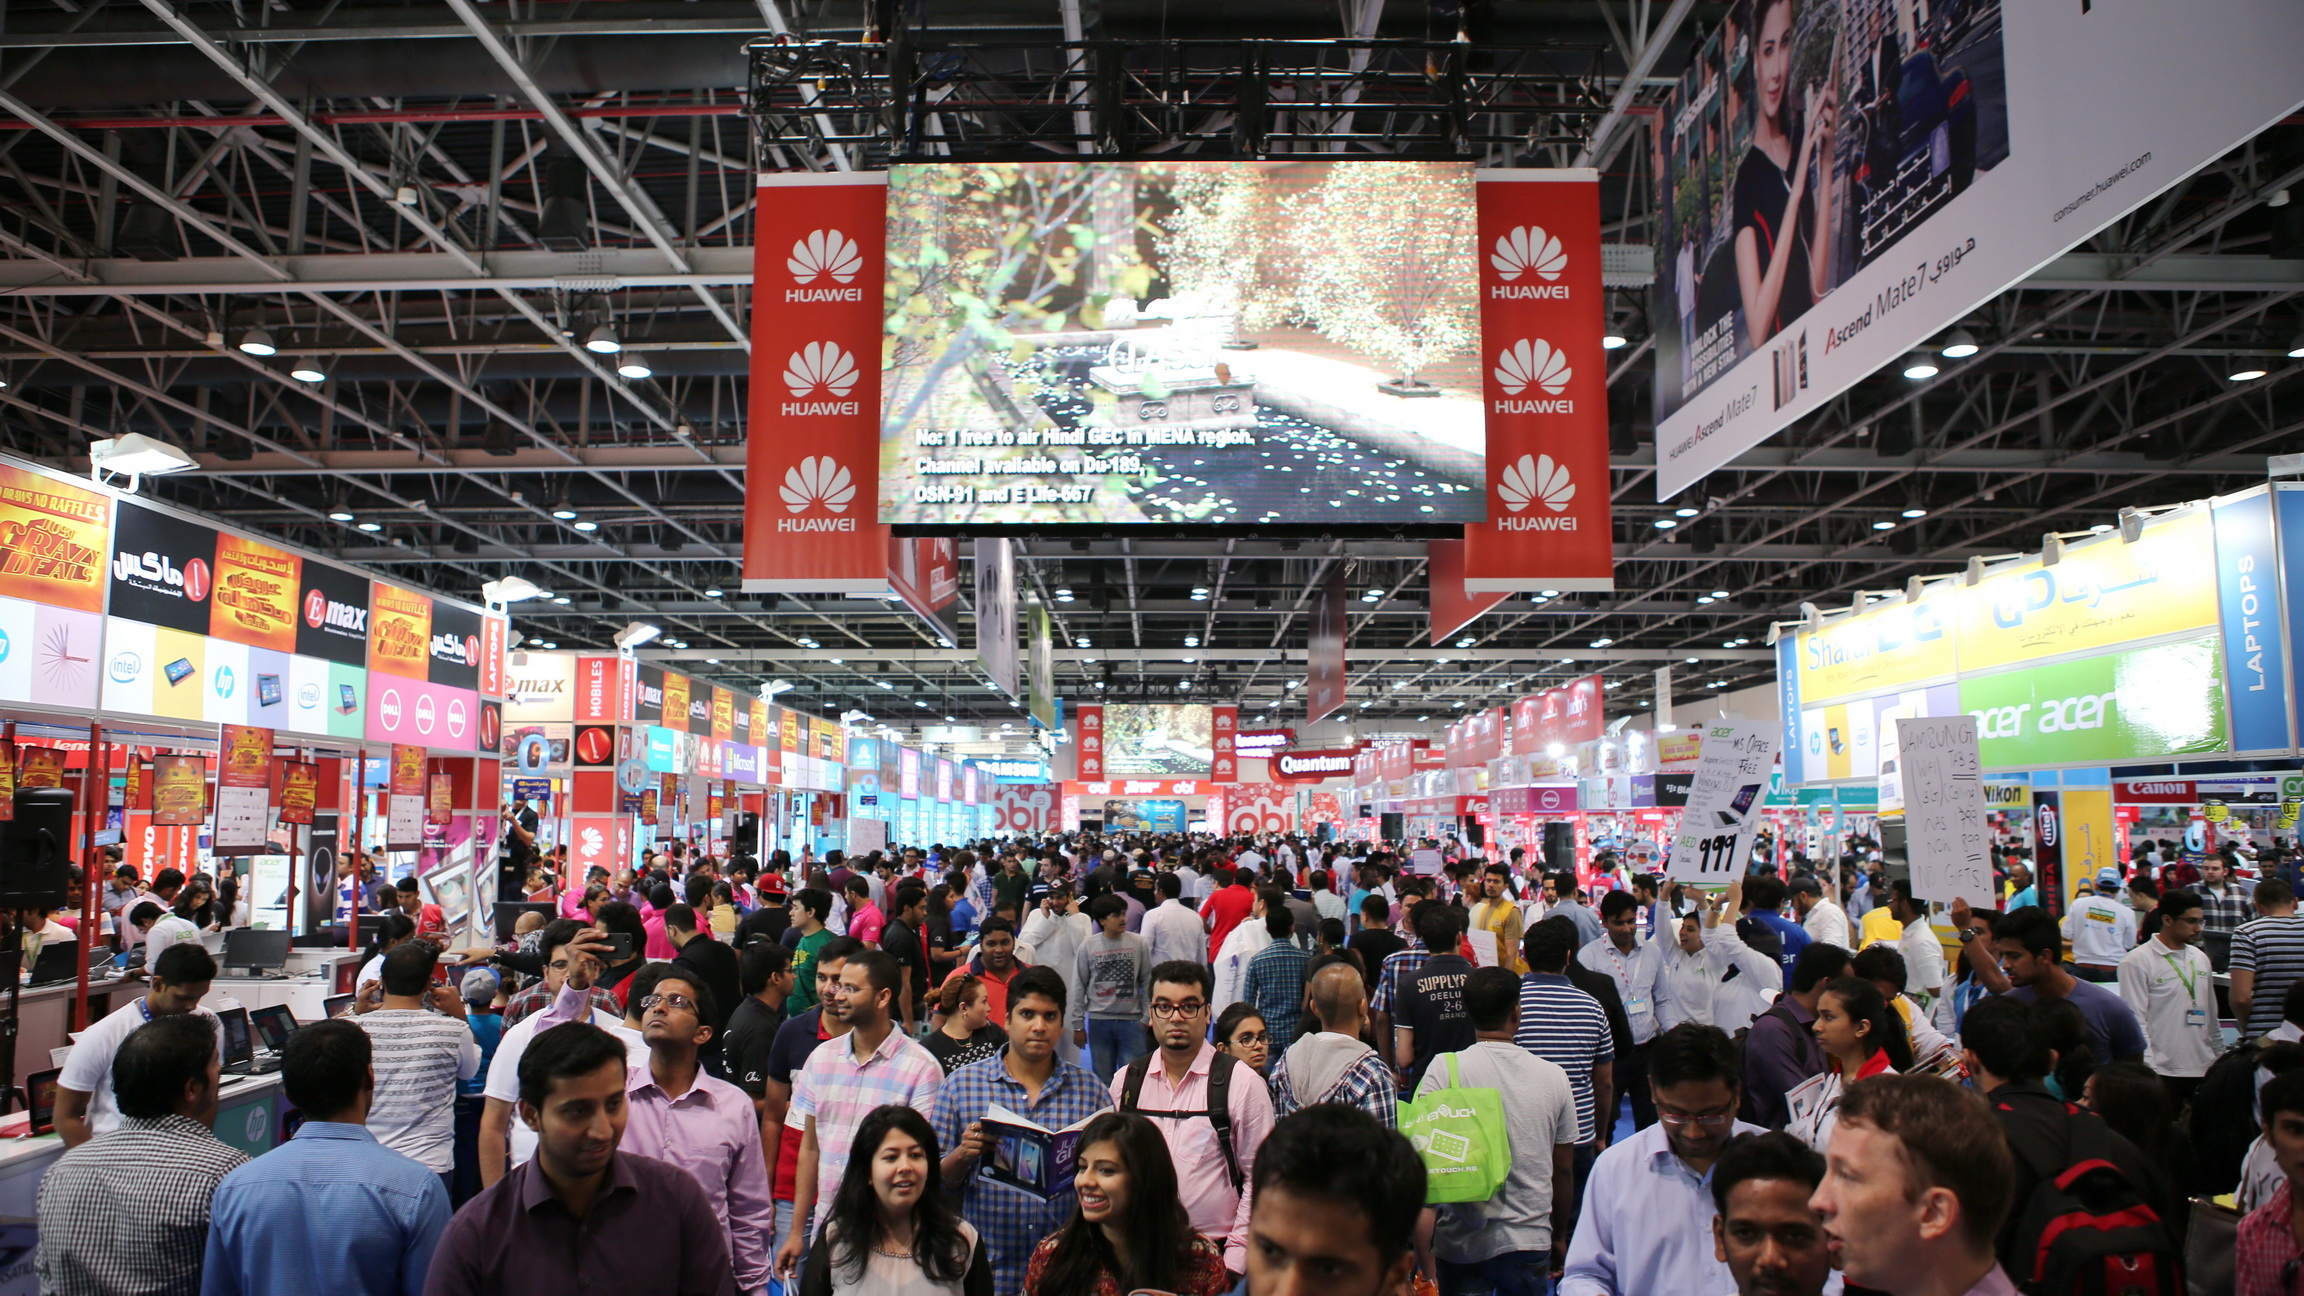 GITEX Shopper 2017 will take place from 23rd – 30th September